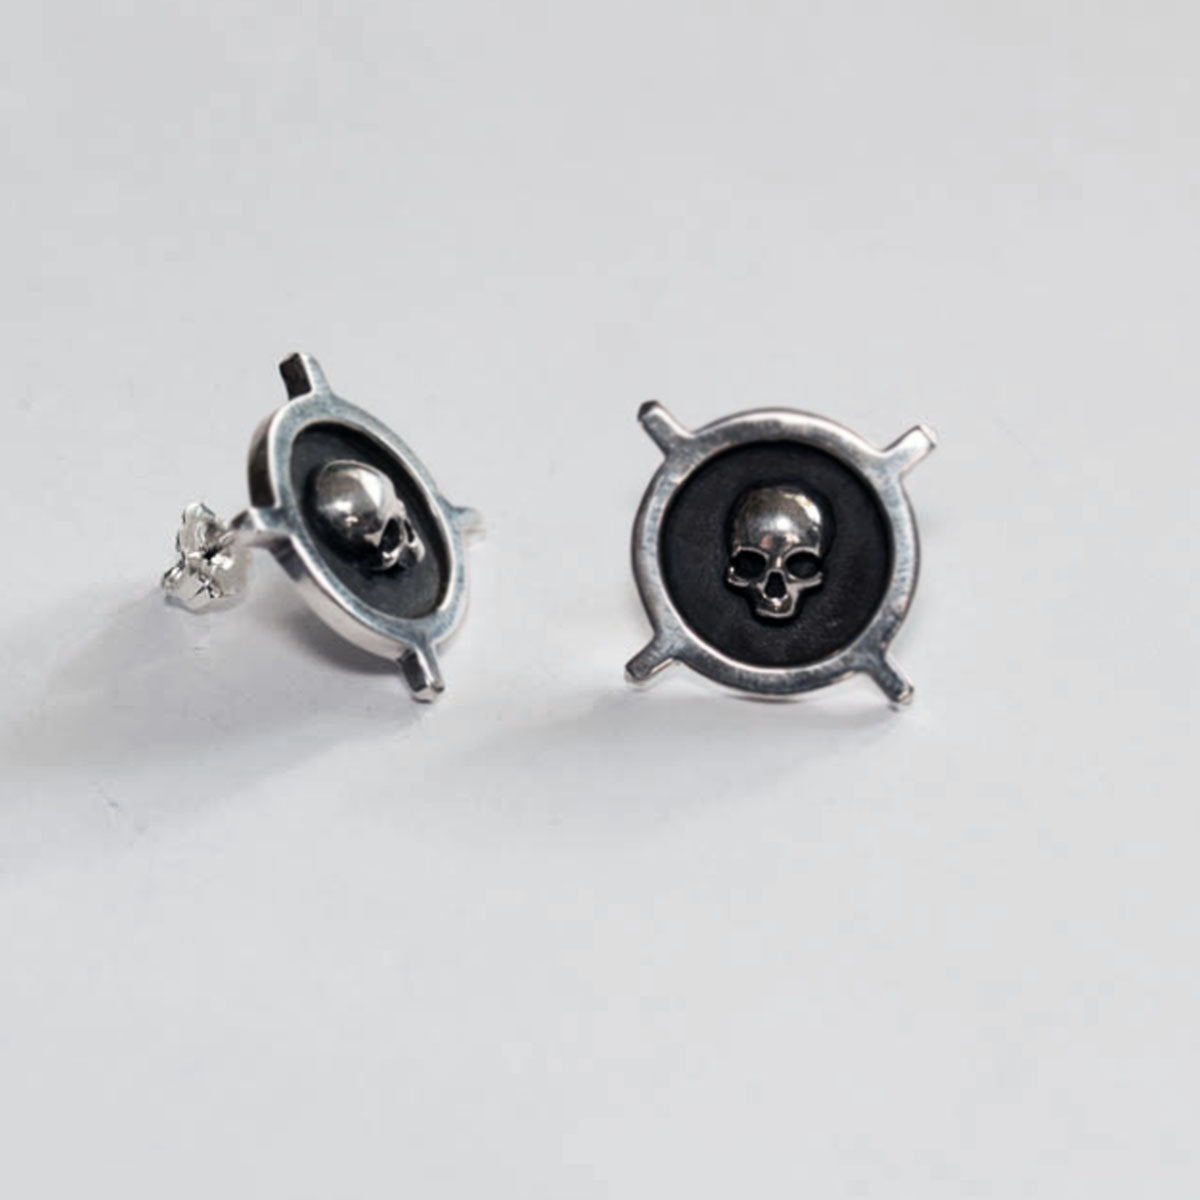 Unisex Skull Crossbone Stud Post Earrings - Inchoo Bijoux